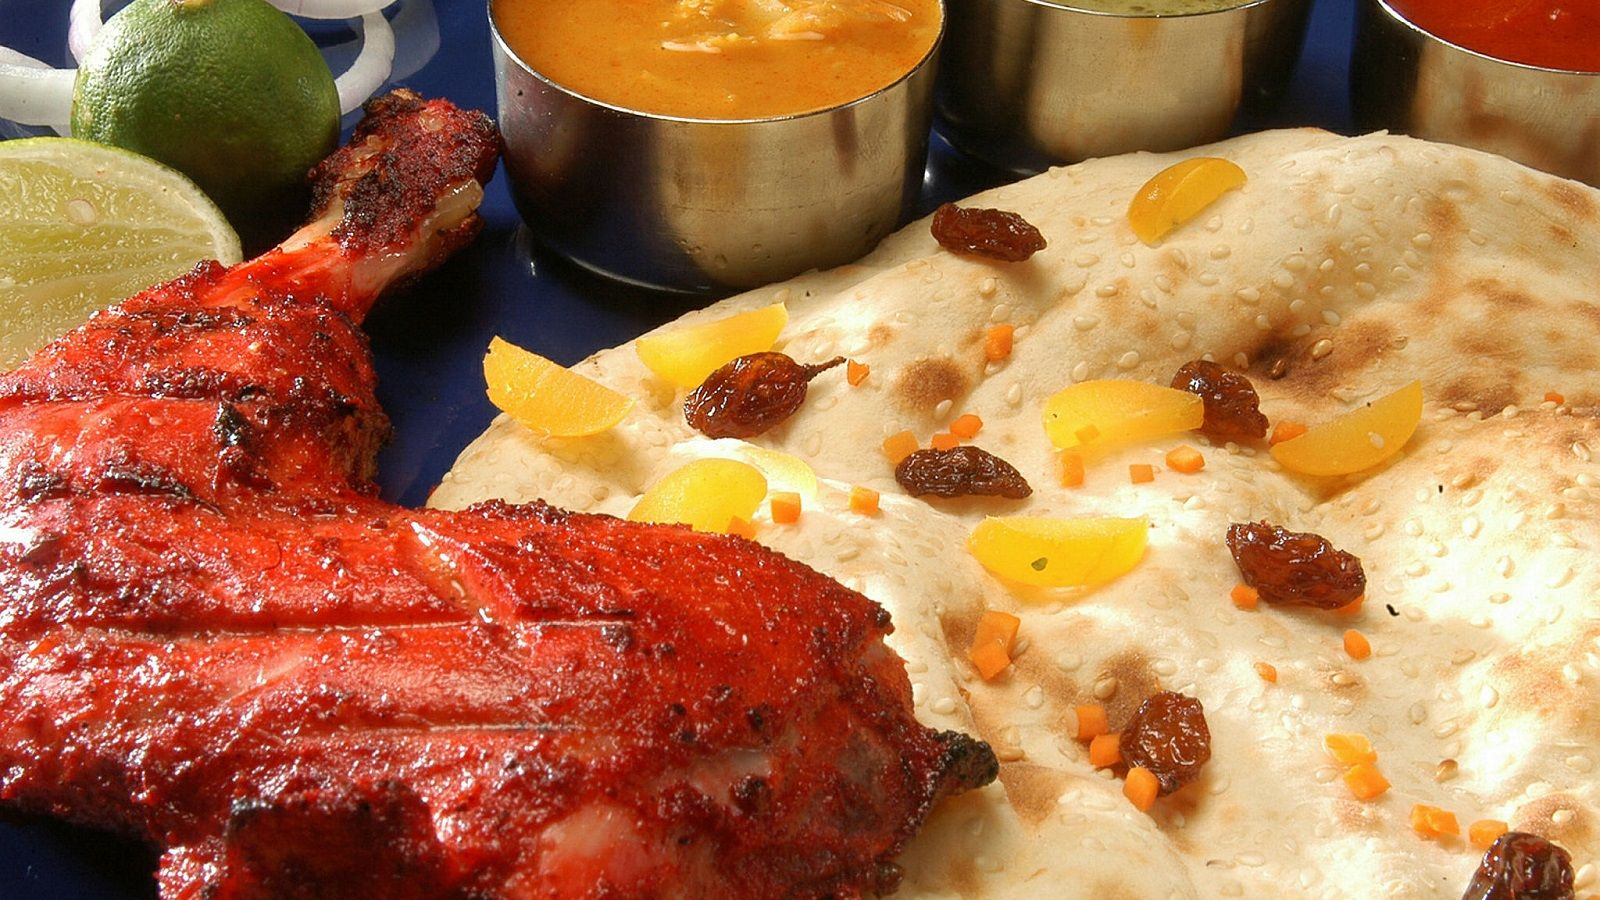 Tandoori Chicken with Naan